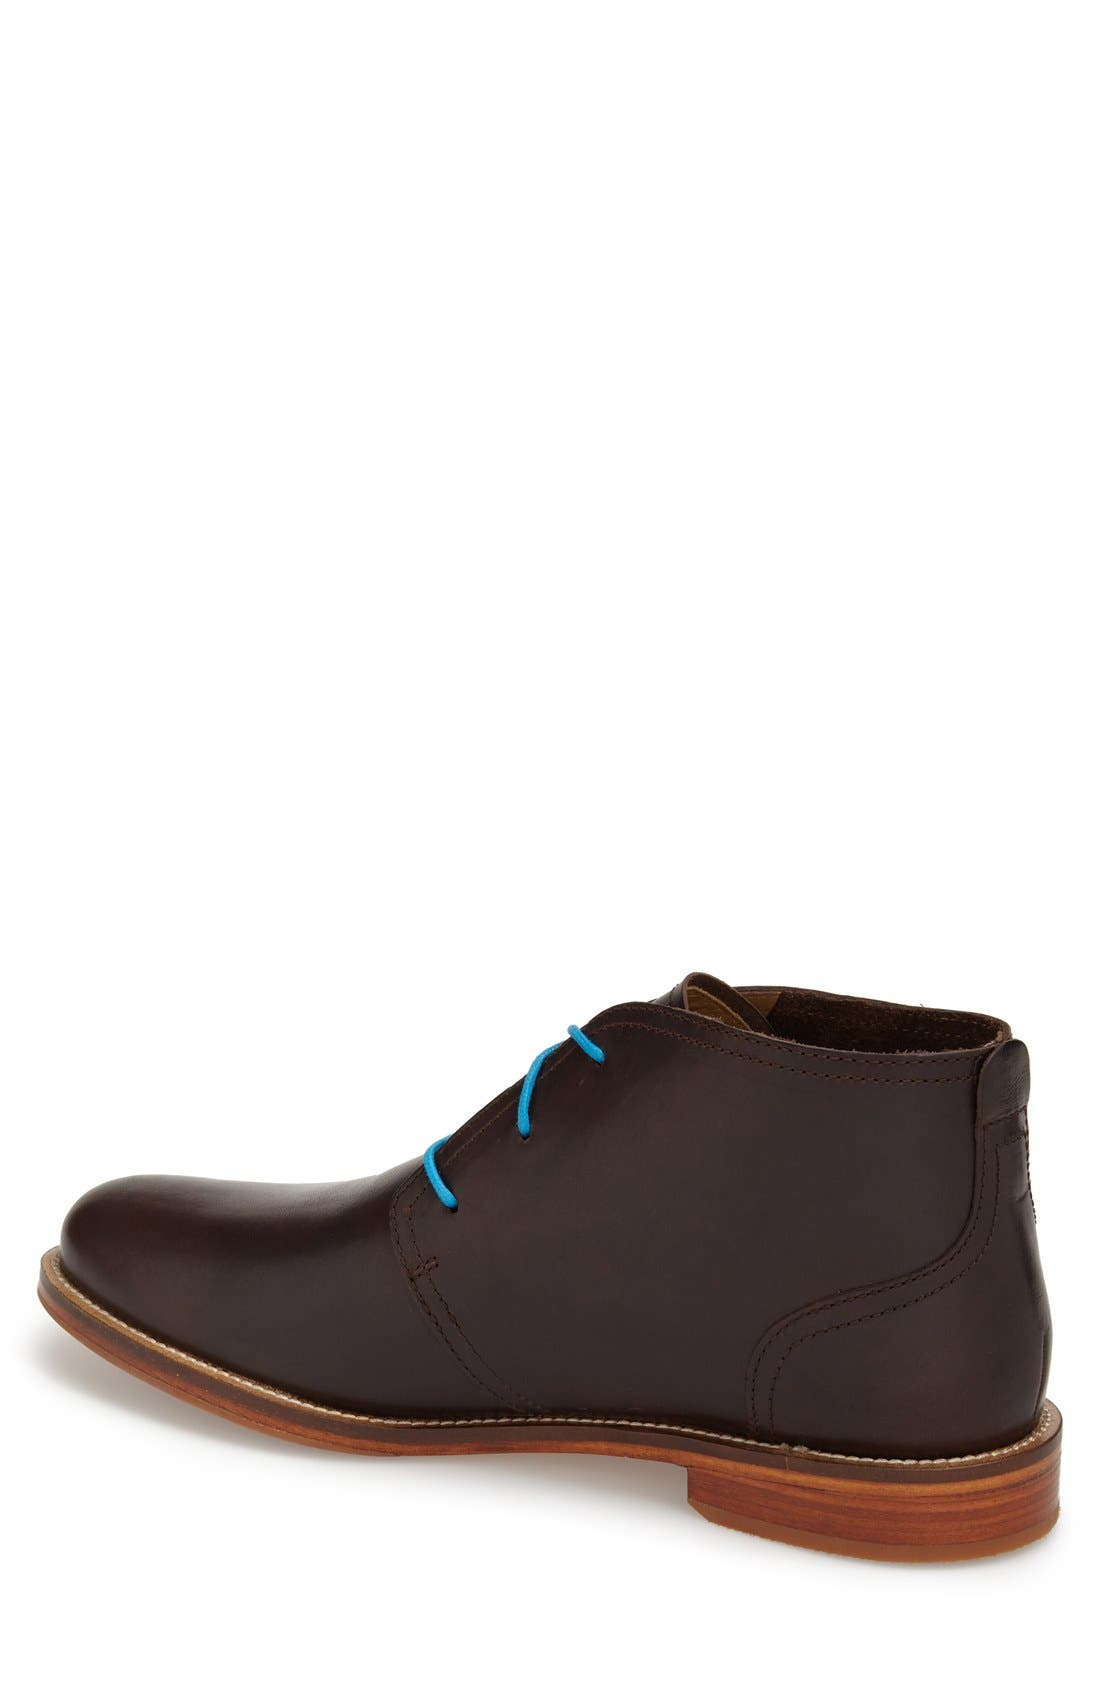 'Monarch Plus' Chukka Boot,                             Alternate thumbnail 2, color,                             Dark Brown Leather